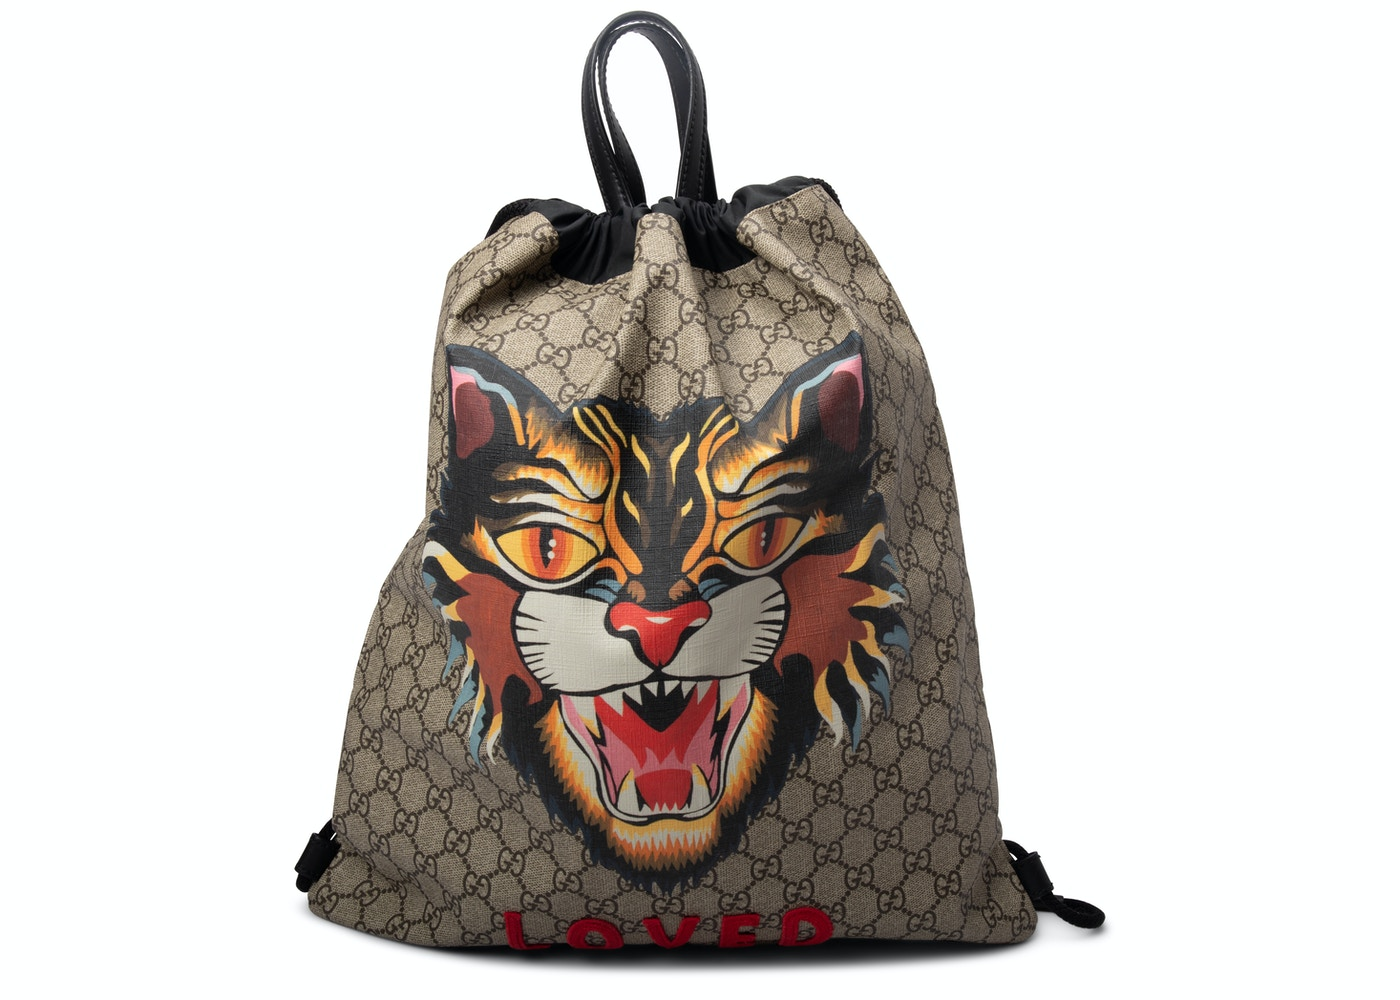 223a4a24e122 Gucci GG Supreme Soft Drawstring Backpack Angry Cat Print Beige ...